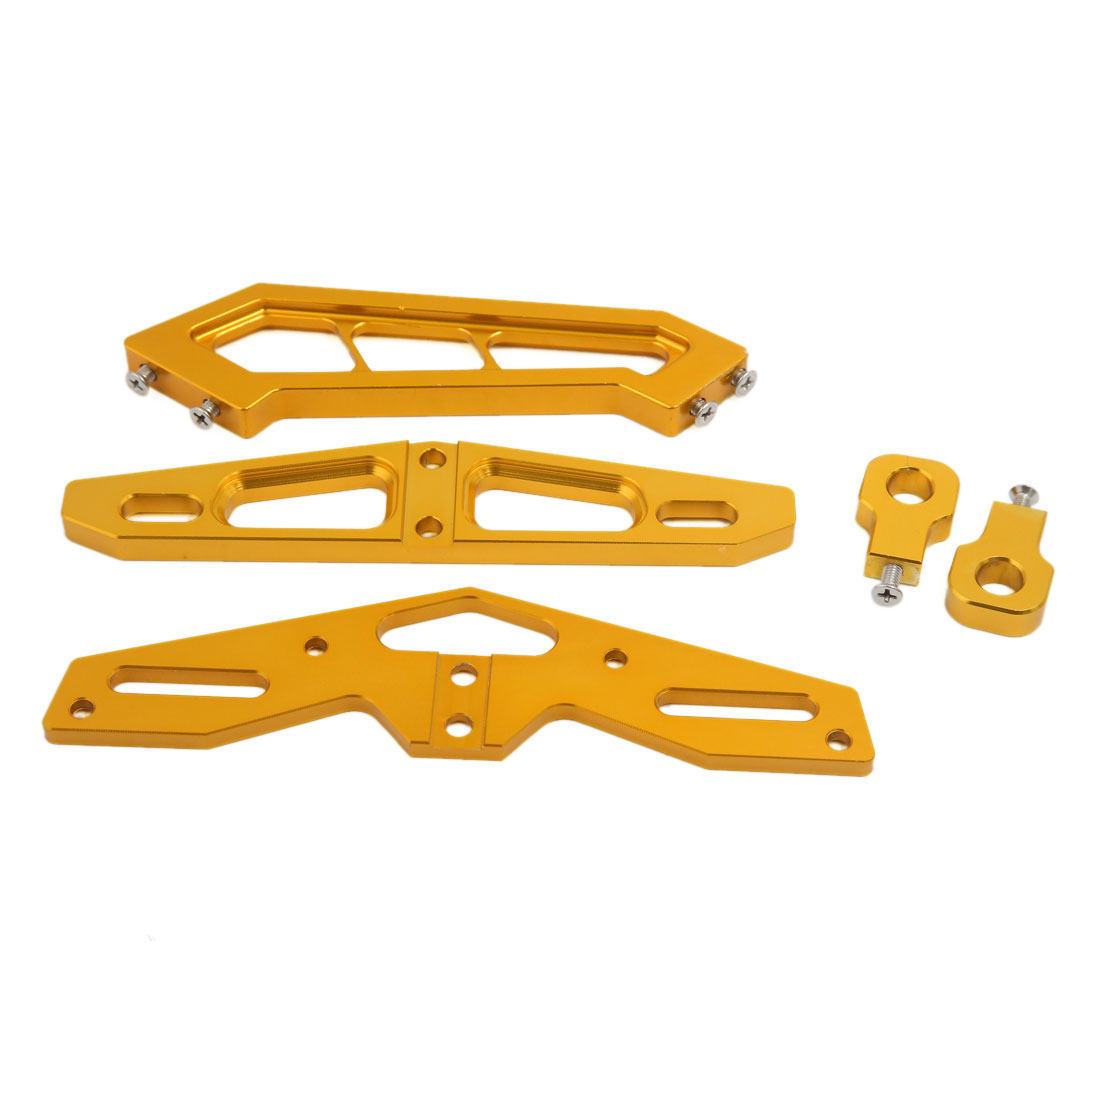 Gold Tone CNC Aluminum Alloy Racing Motorcycle Tail License Plate Frame Support Bracket